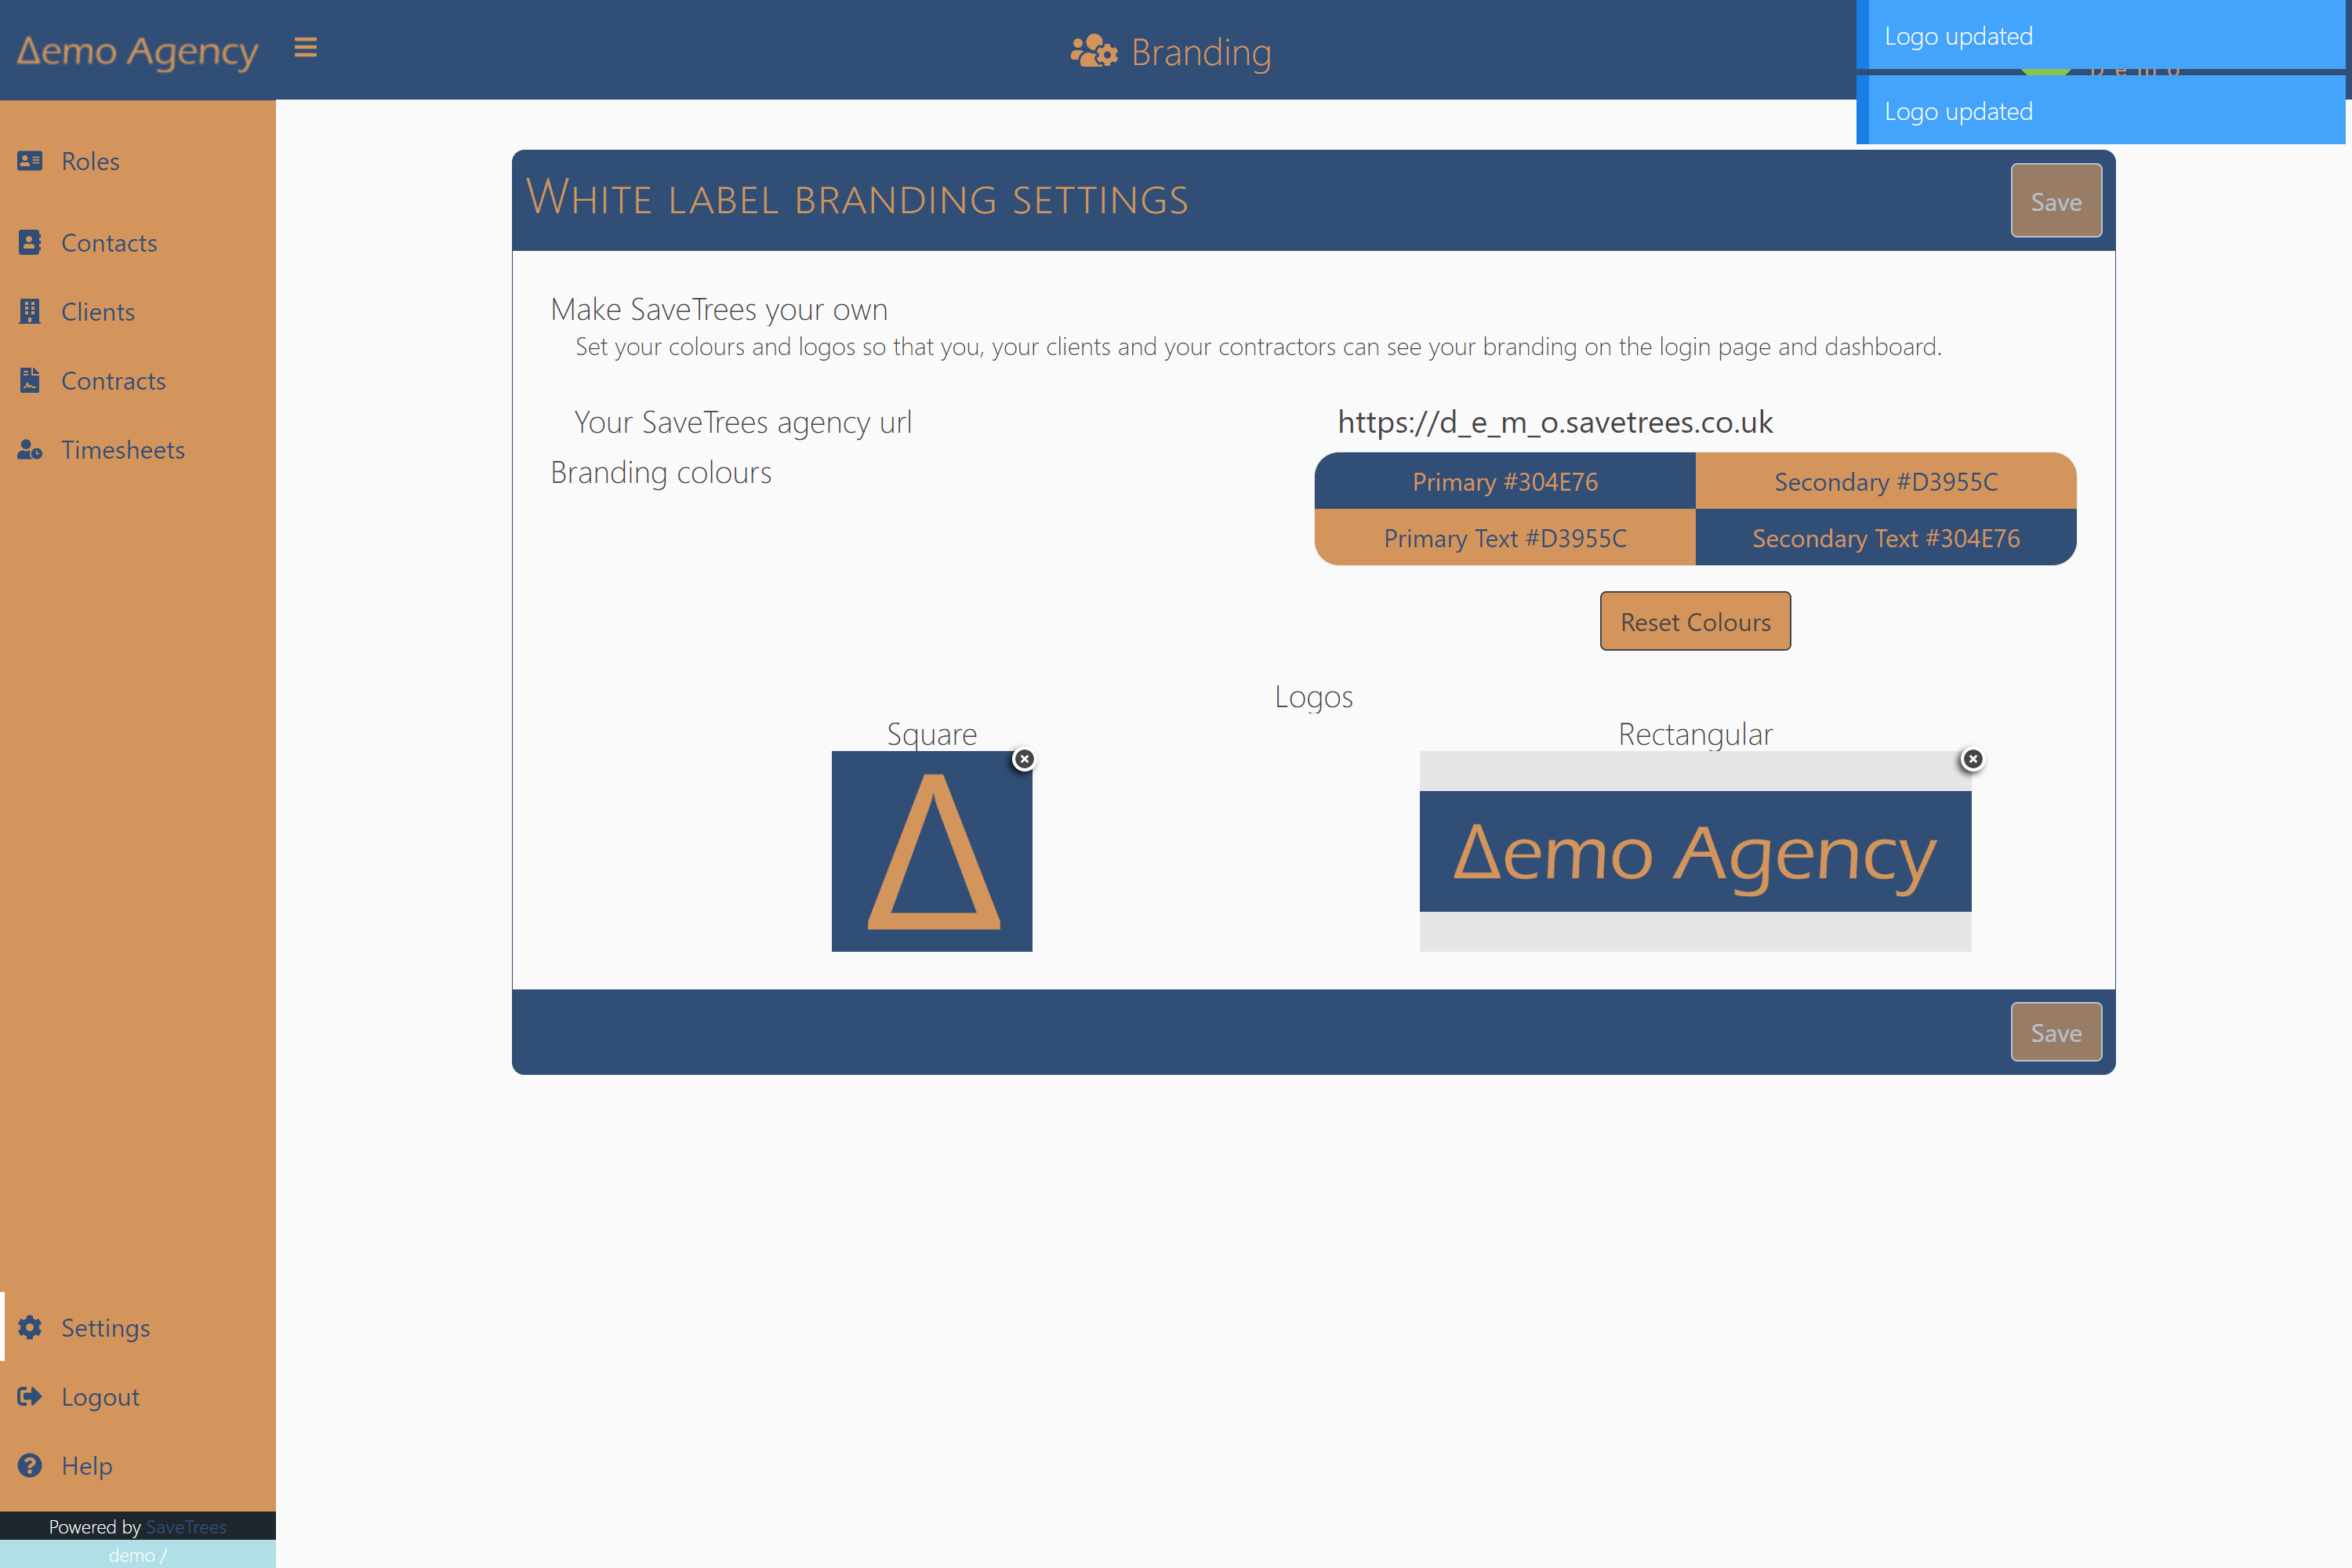 Save everything and your agency dashboard will now be branded